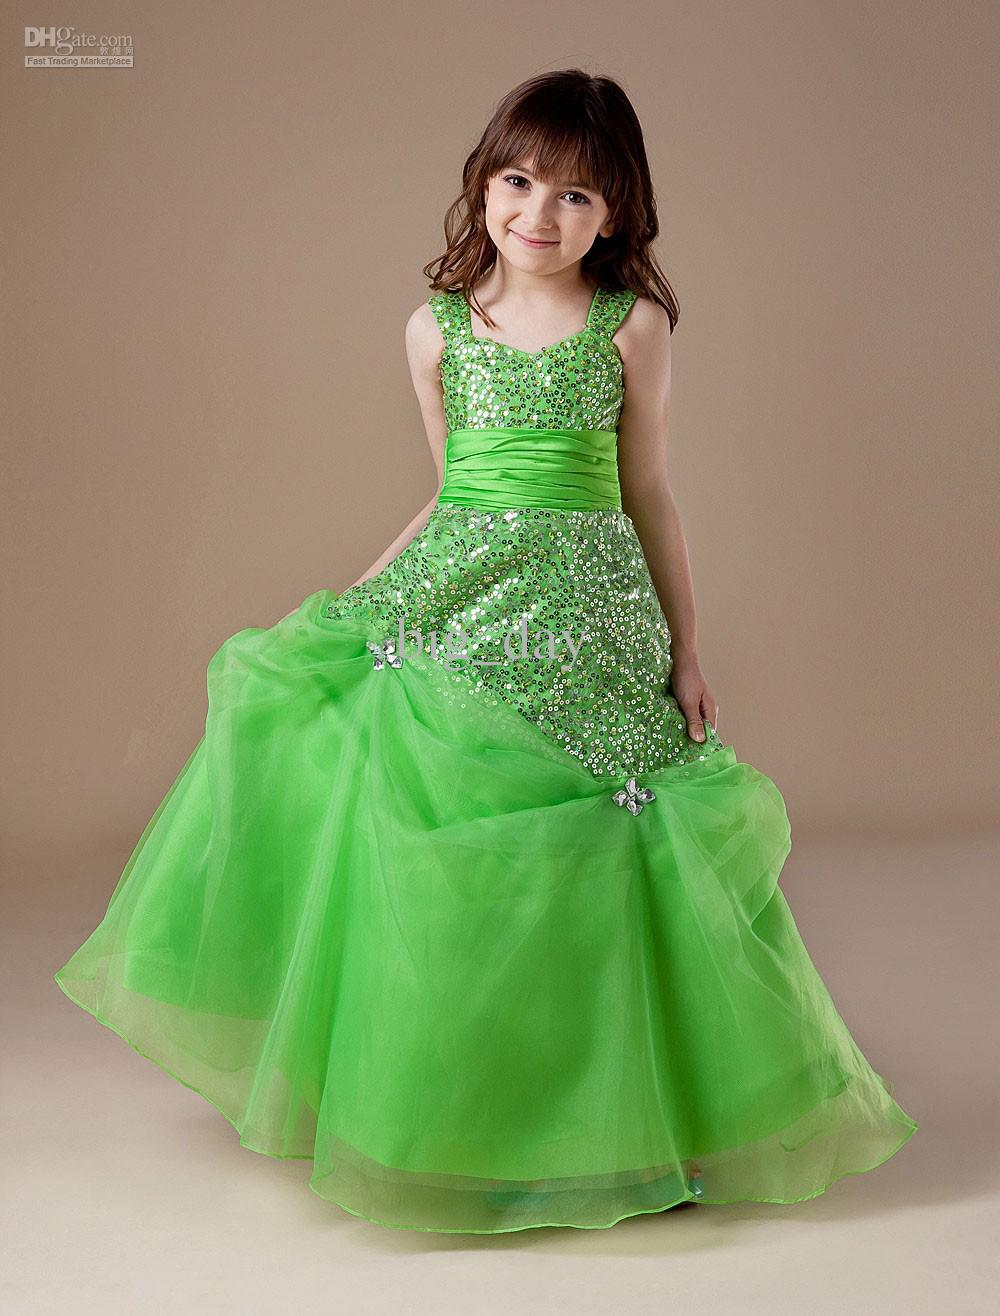 Online Green Gawon Frock Prices - Shopclues India